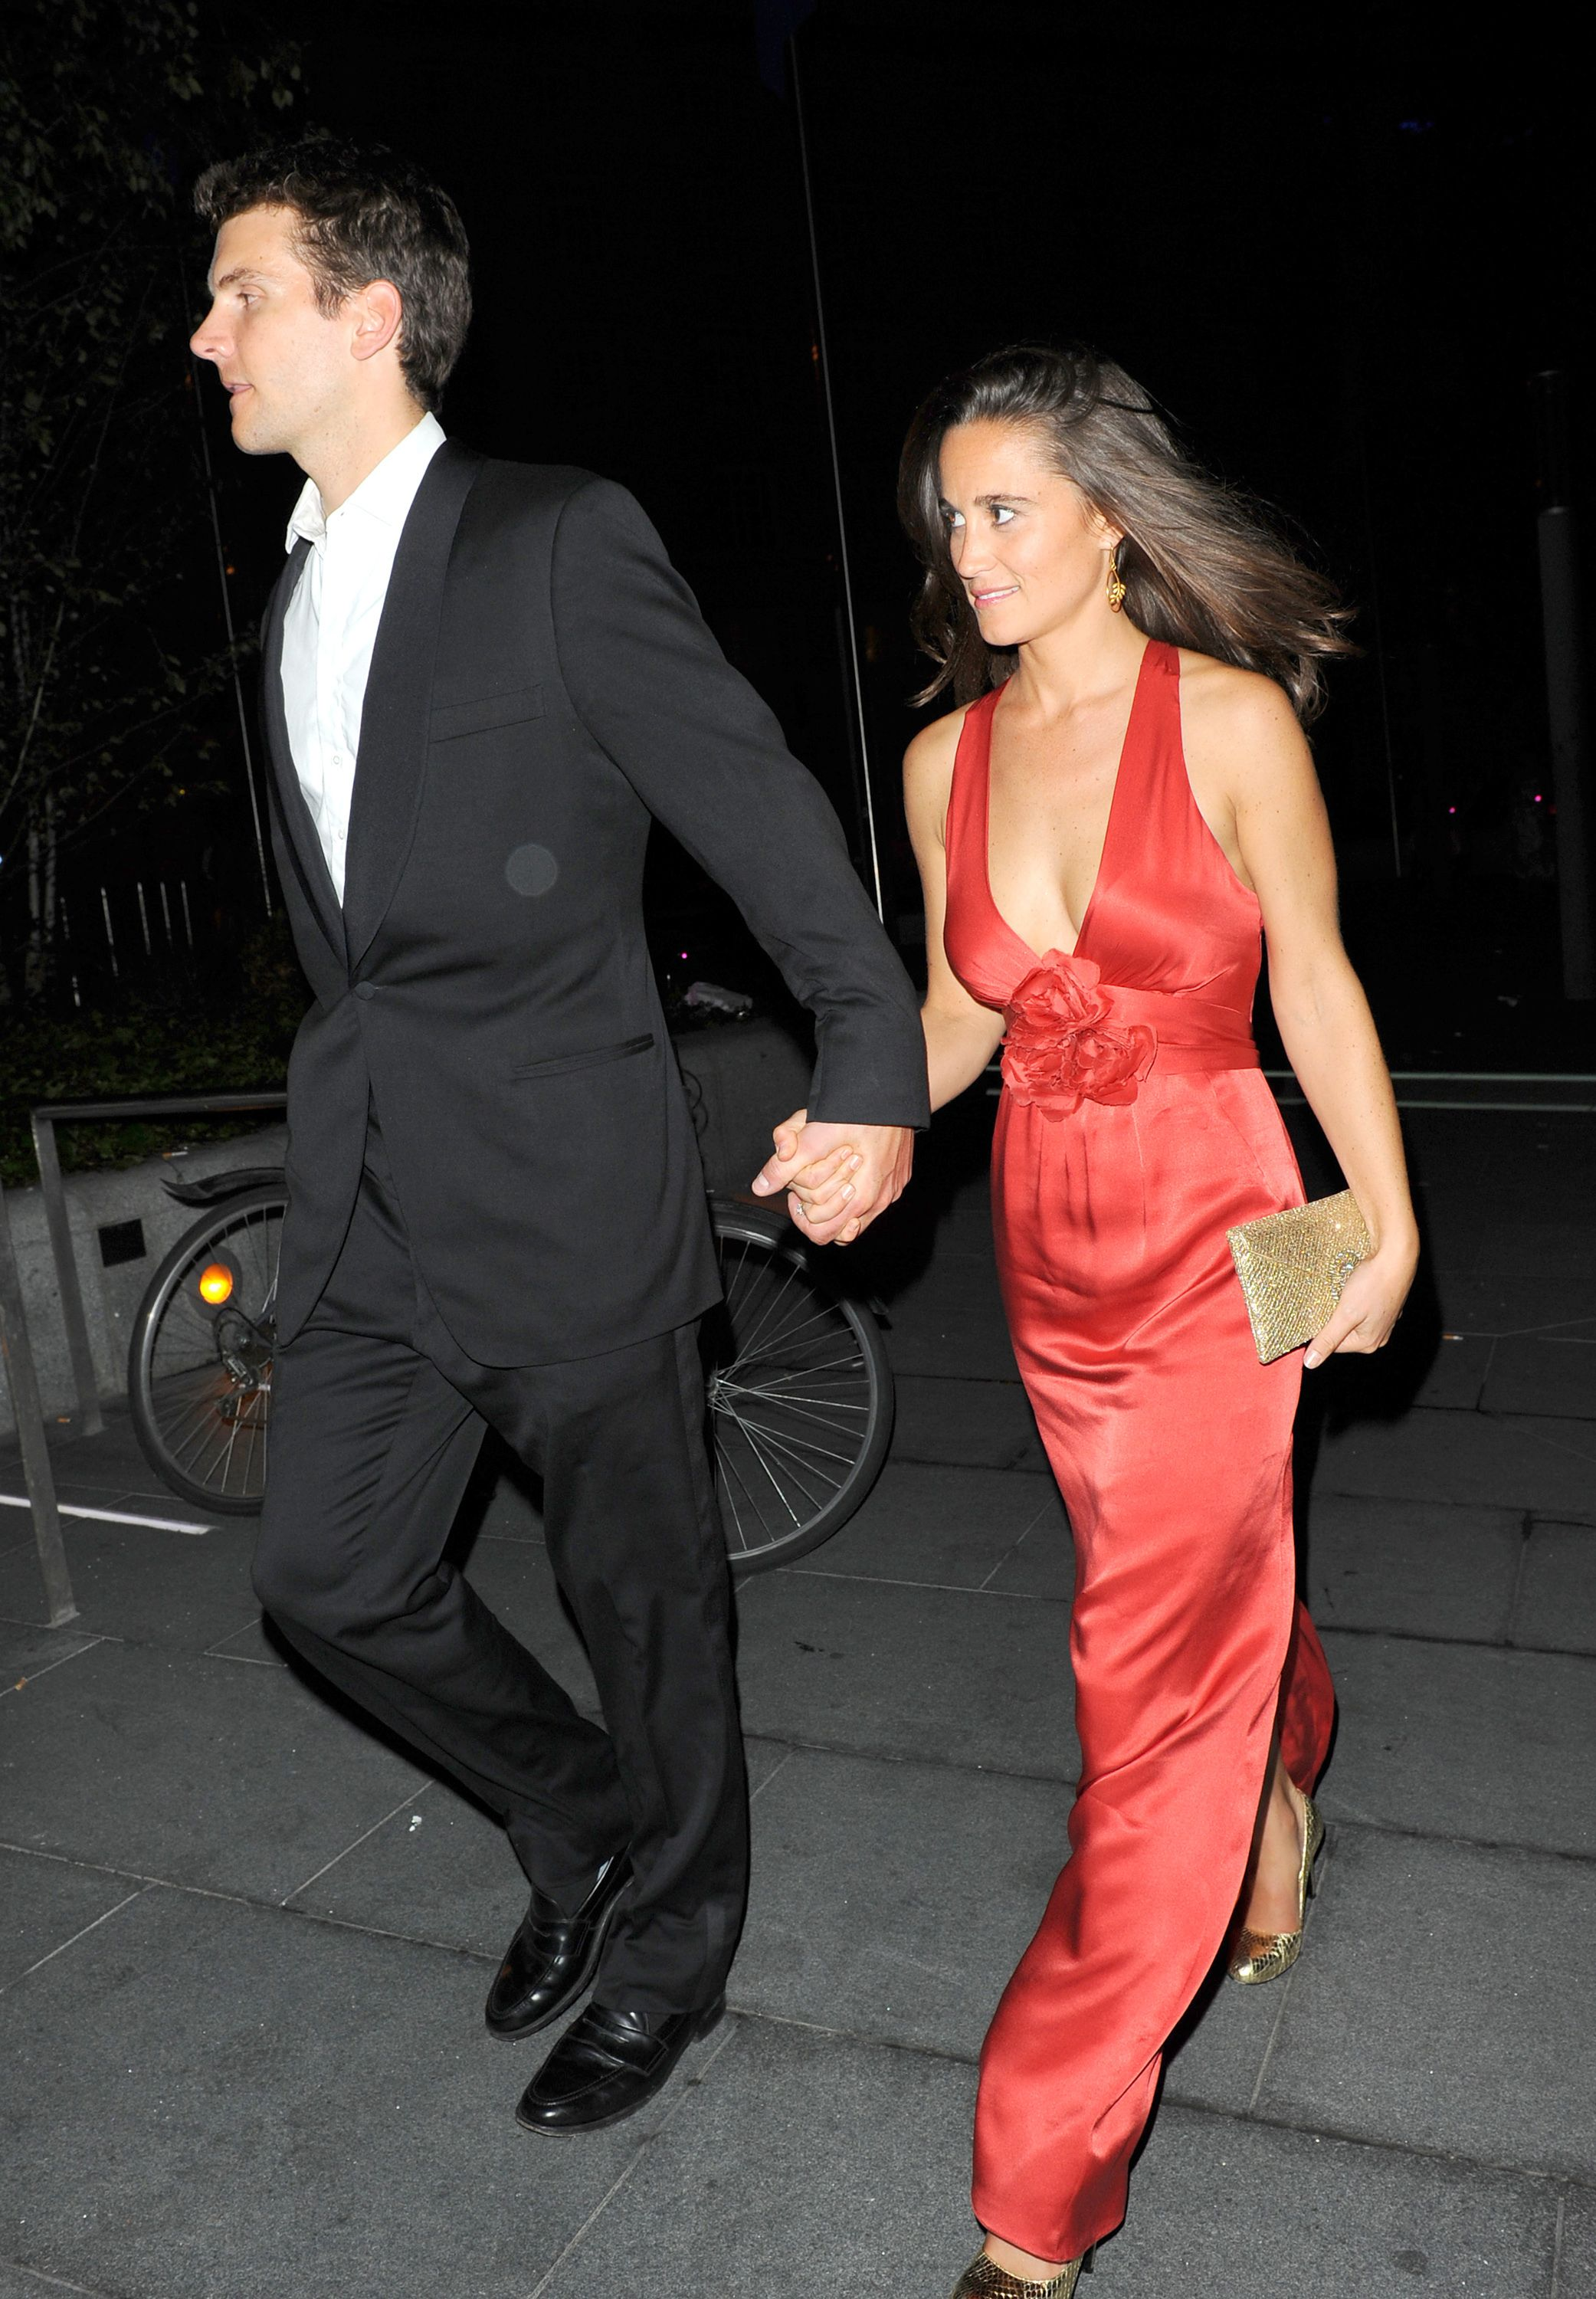 Pippa Middleton Has A Red Hot Night Out With The Young Royals Pippa Middleton Pippa Middleton